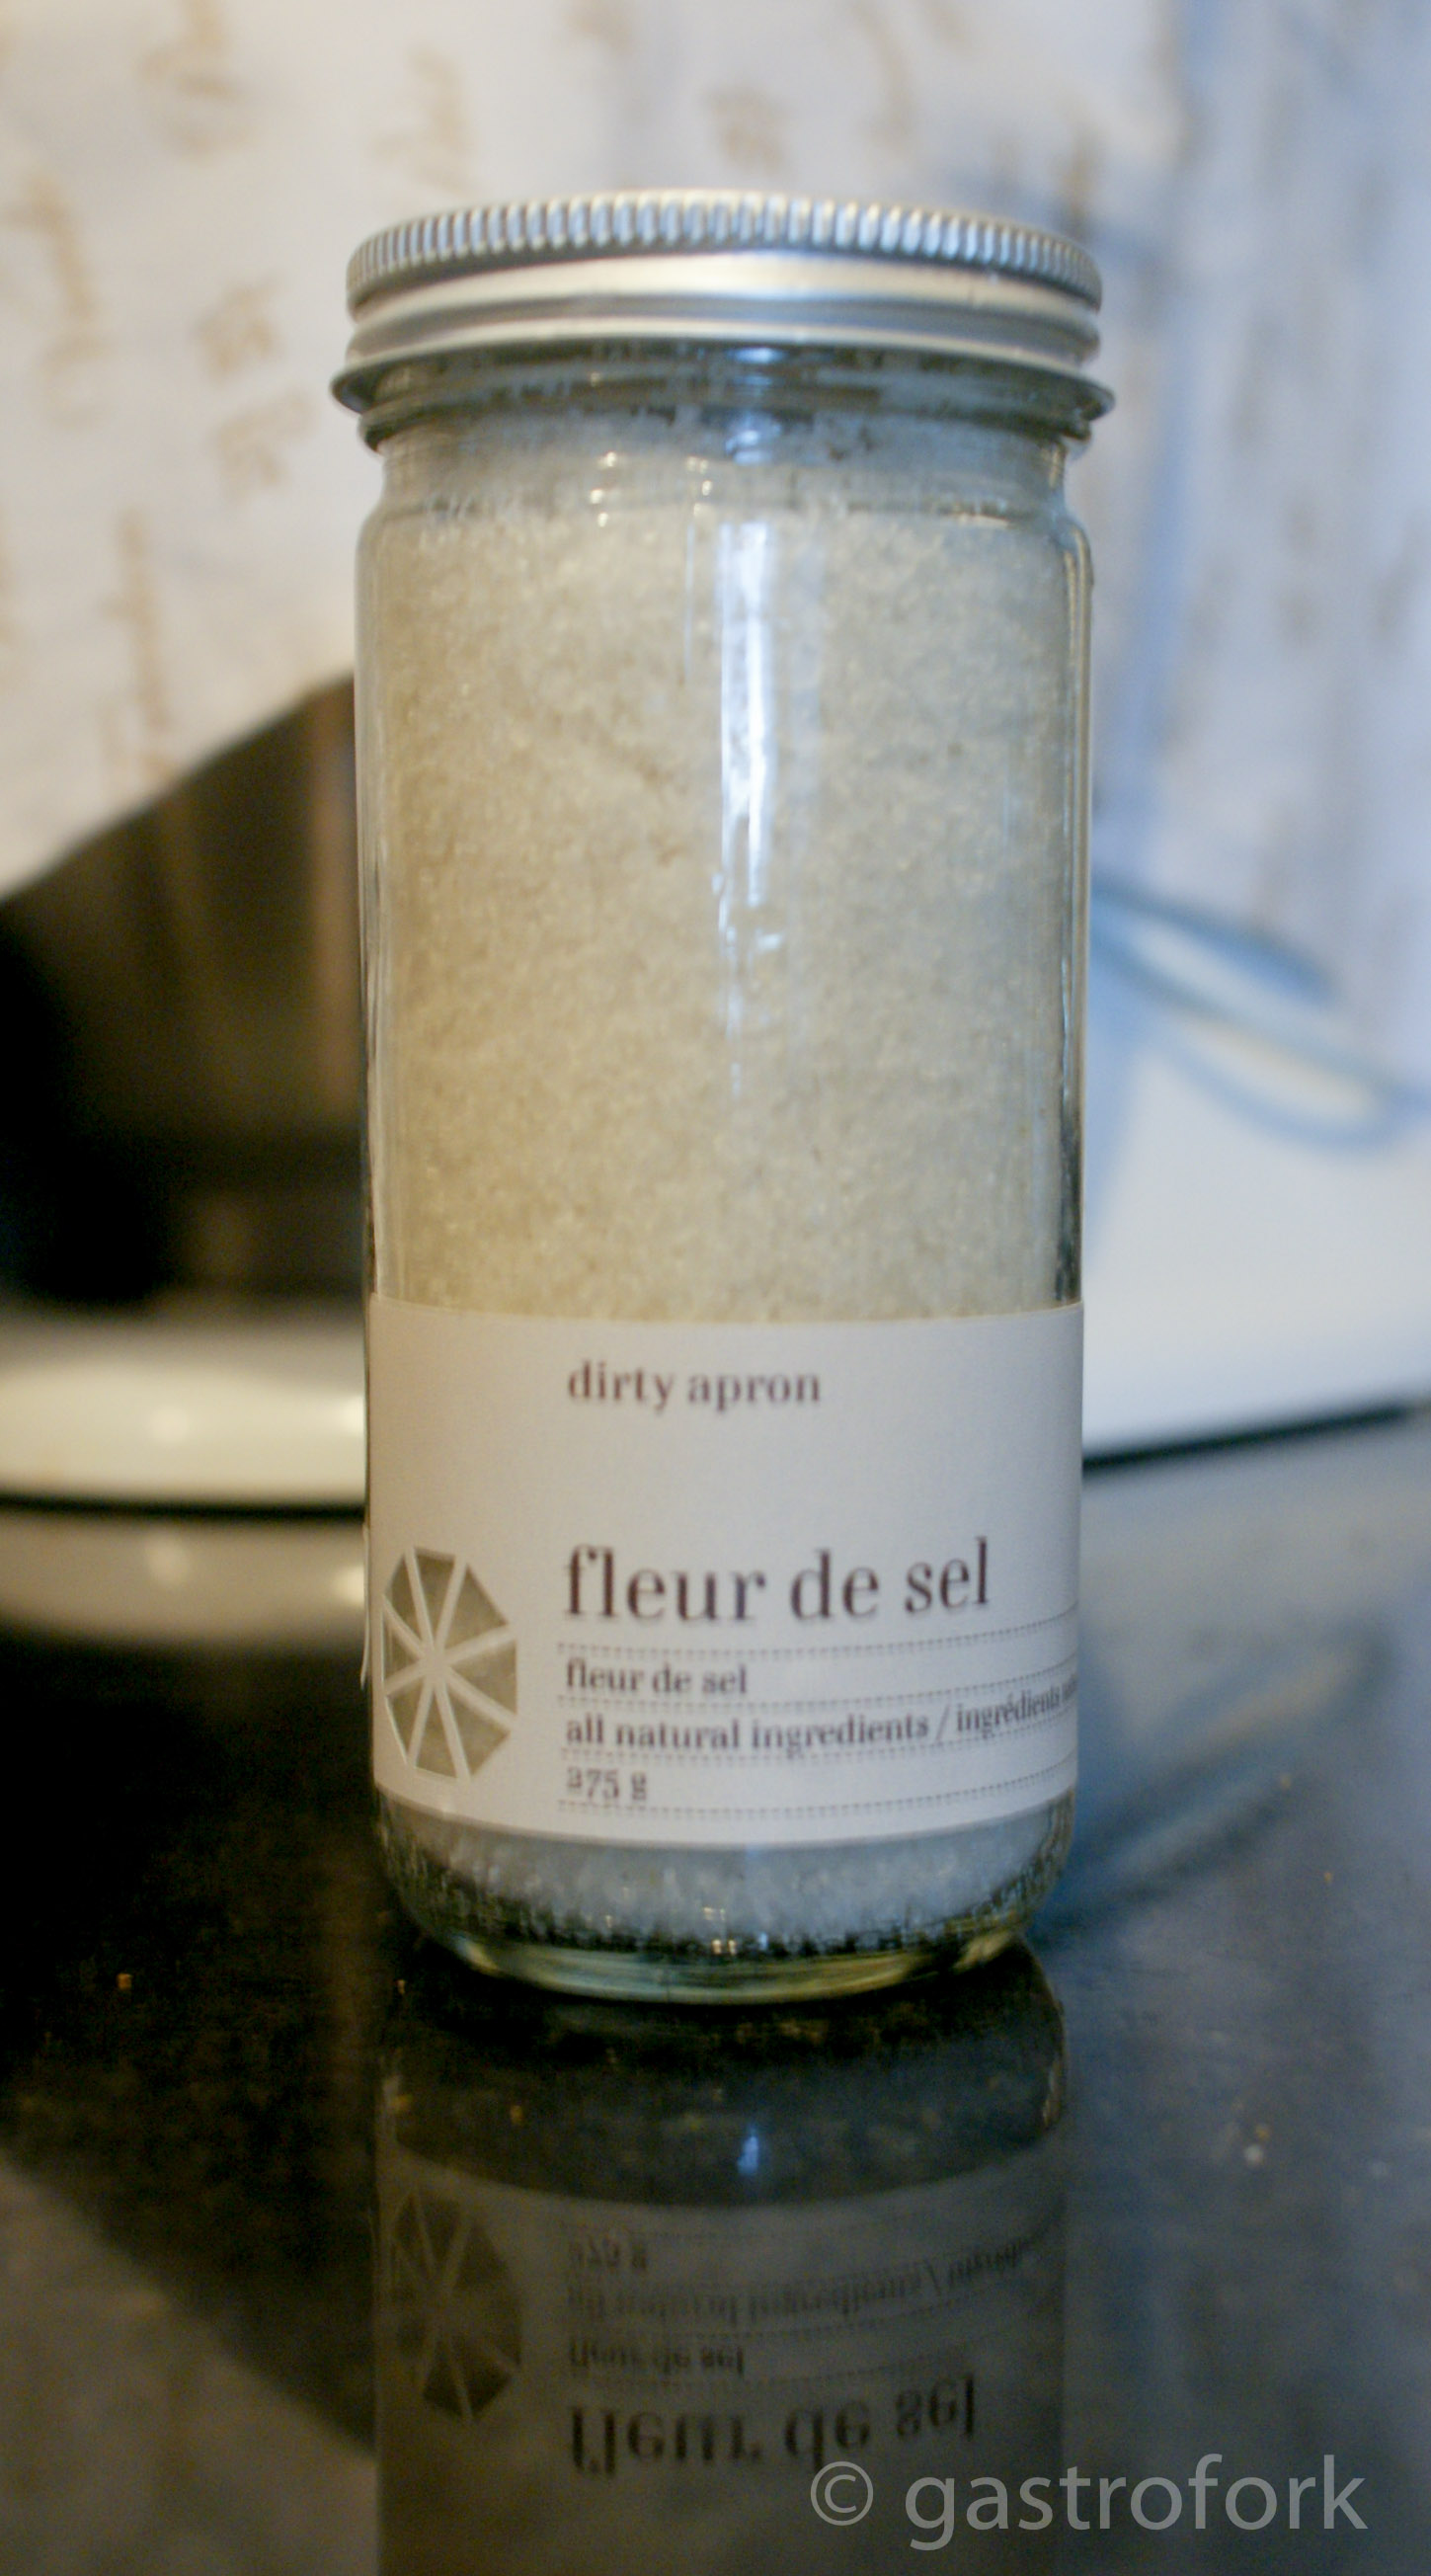 Use fleur de sel rather than your traditional salt - it helps keep the moisture!